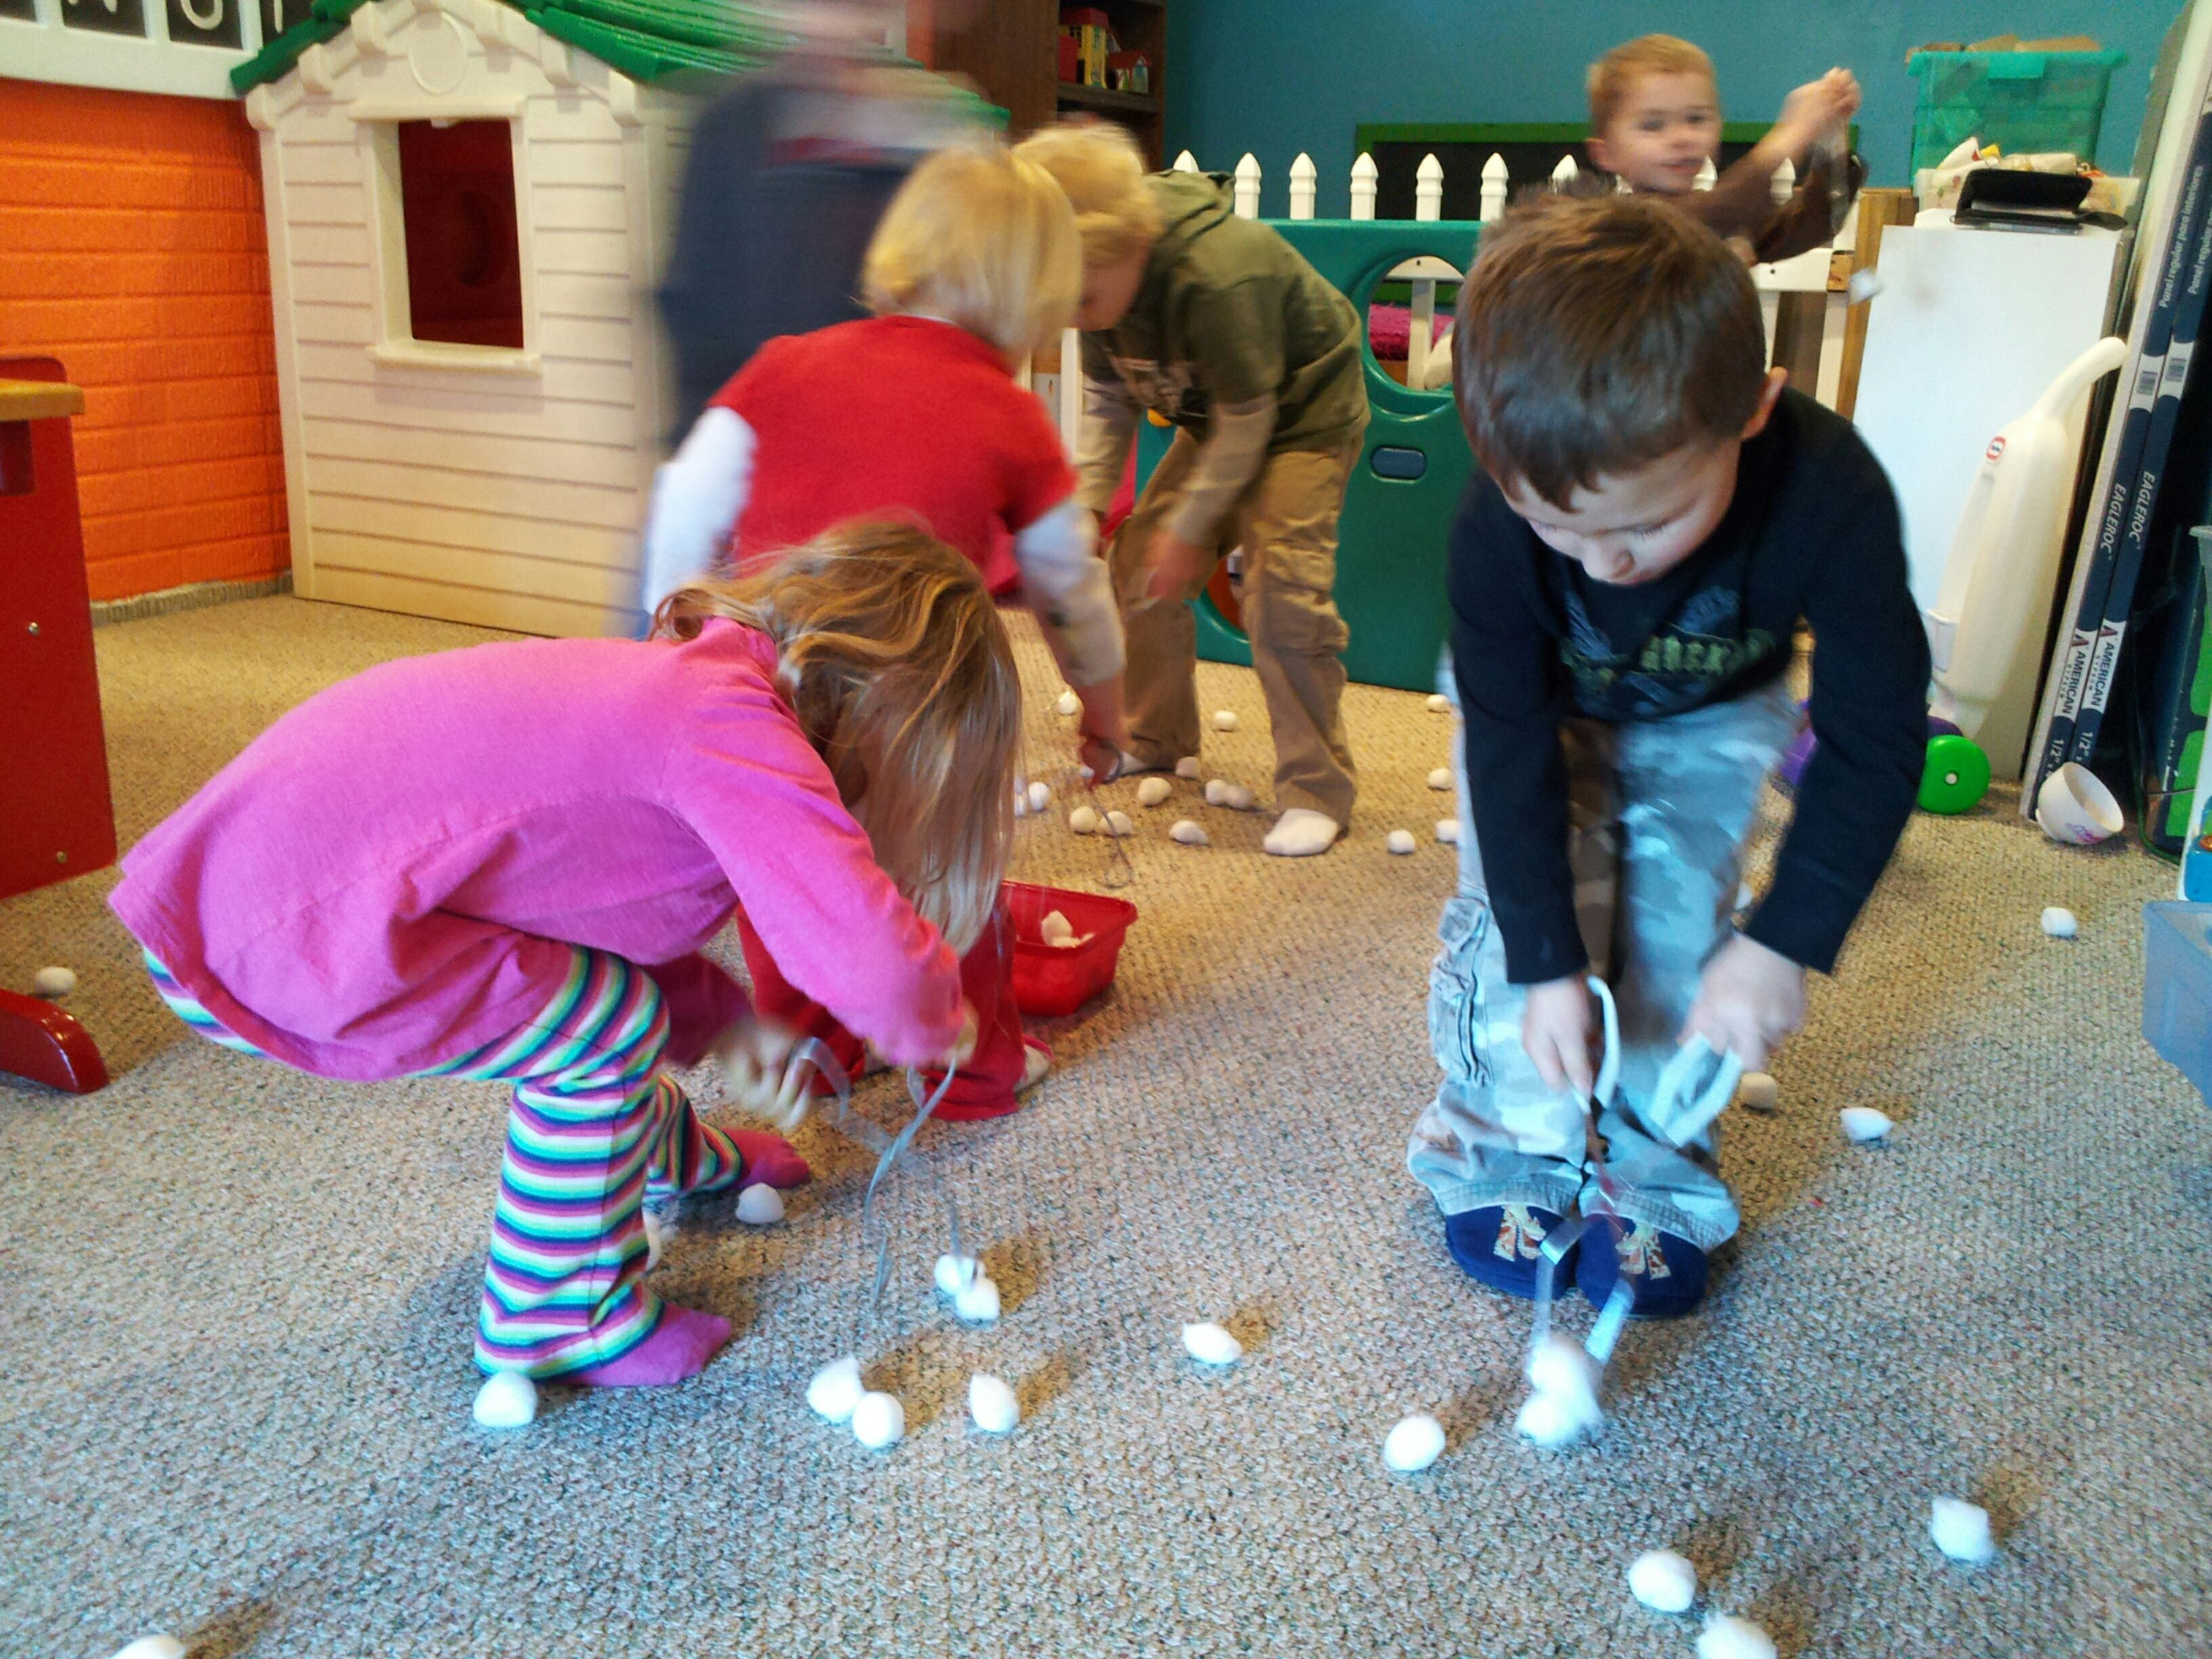 Snowball Pickup Scatter Cotton Balls Around The Room And Have Children Pick Them Up Using